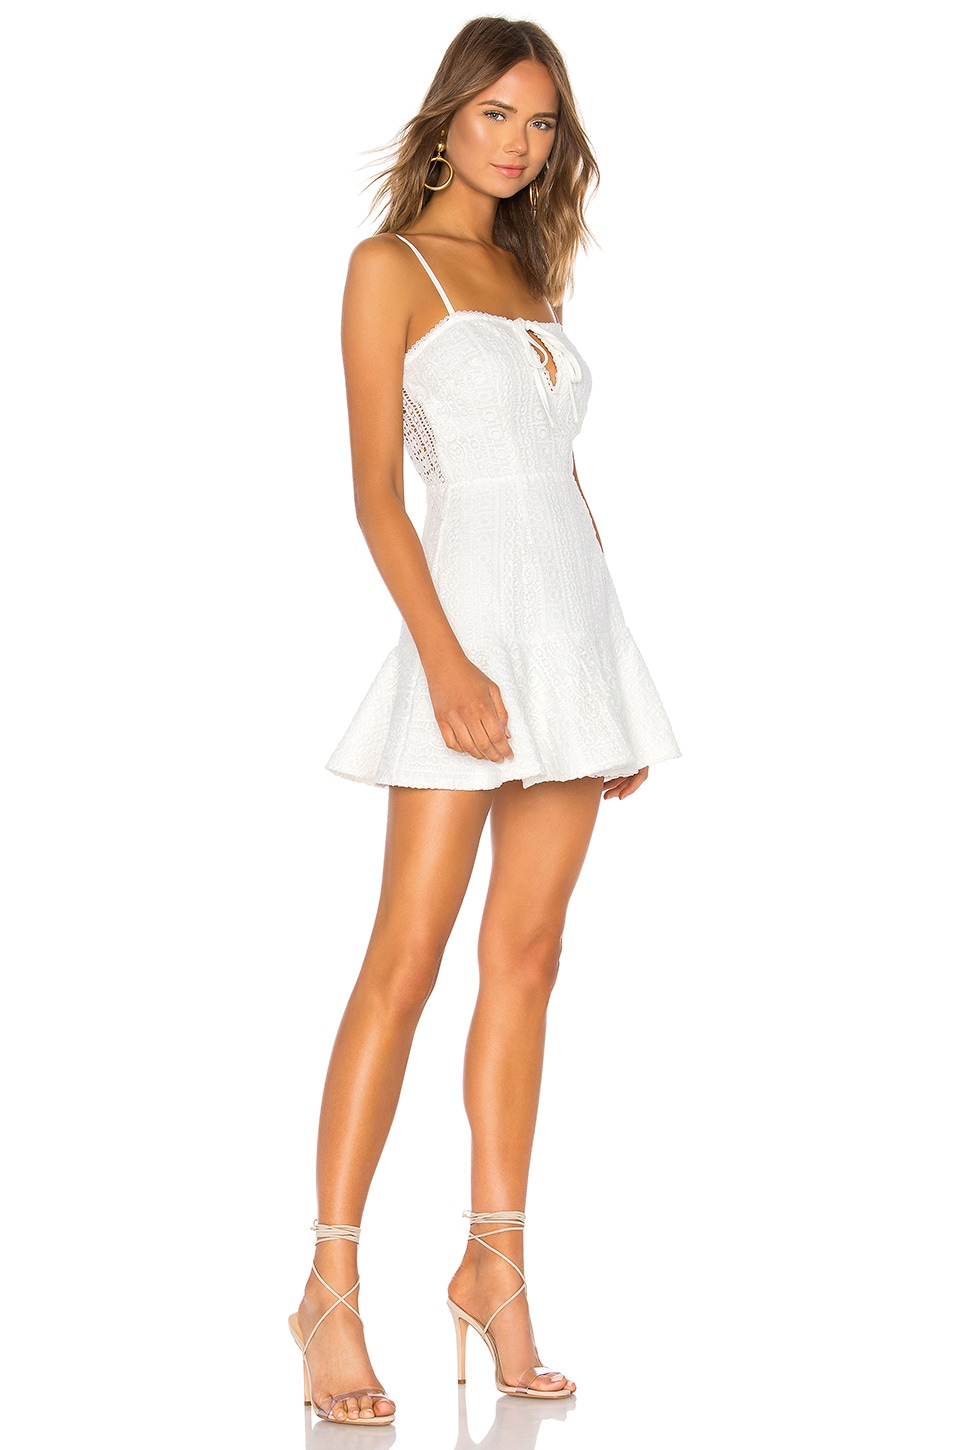 Del Crochet Keyhole Dress             superdown                                                                                                       CA$ 101.11 11